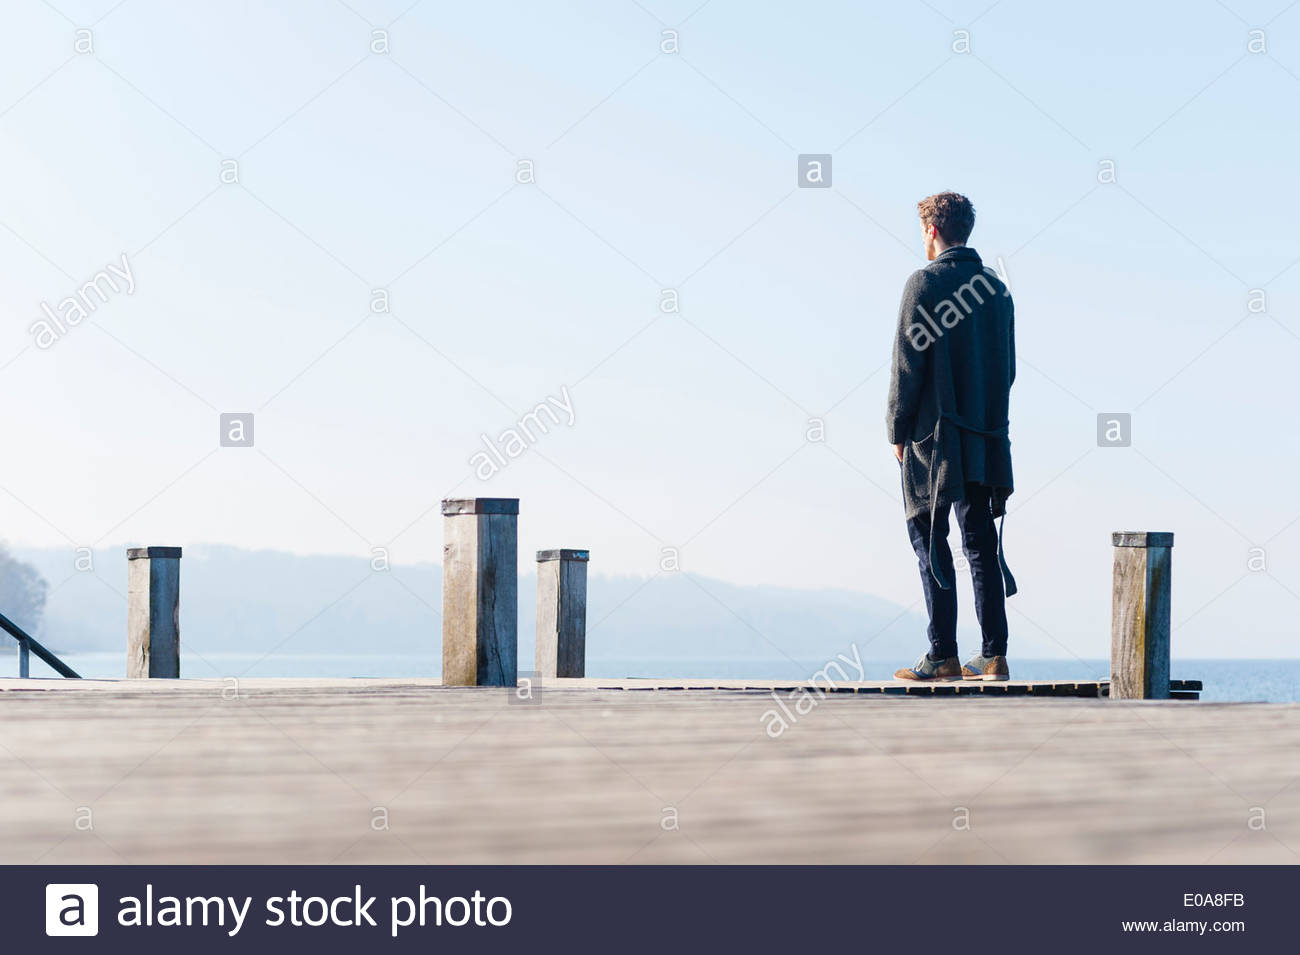 Mid adult man standing on pier, rear view - Stock Image